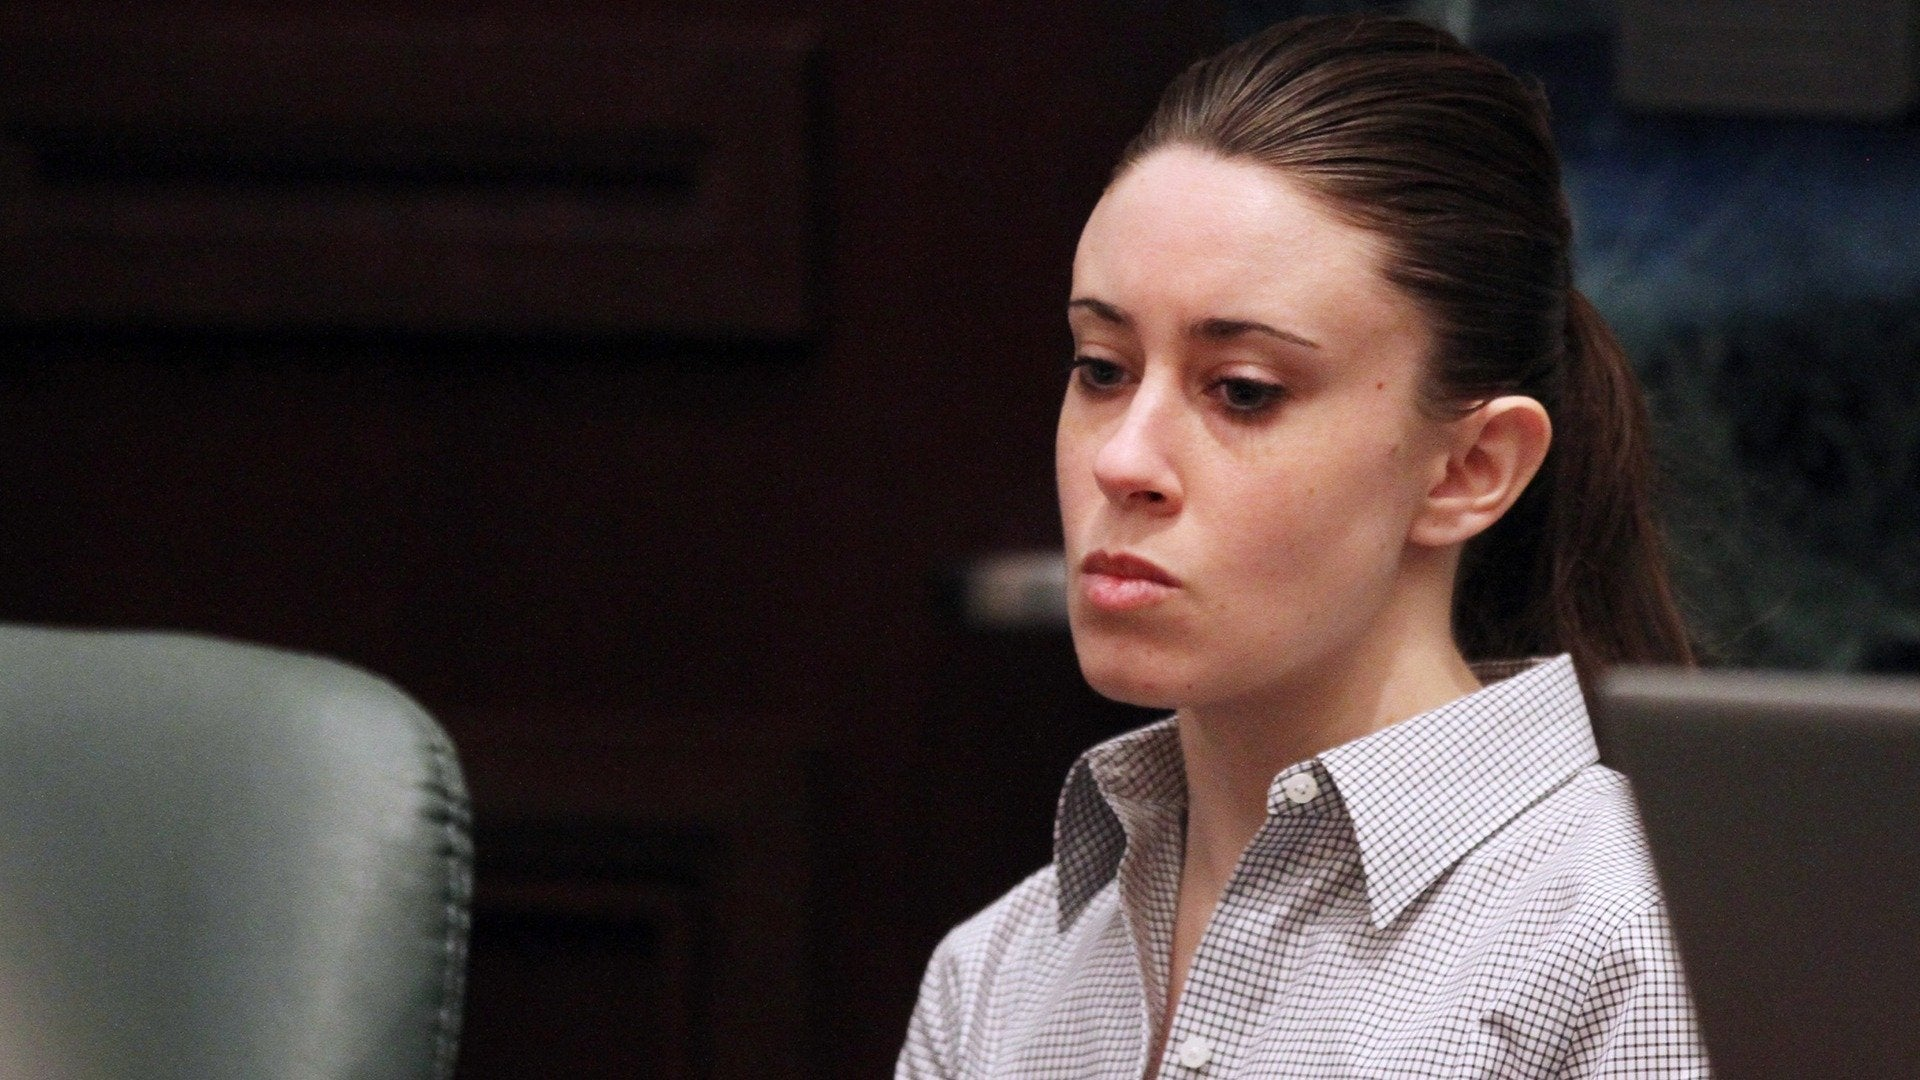 Casey Anthony: How Did We Get Here?